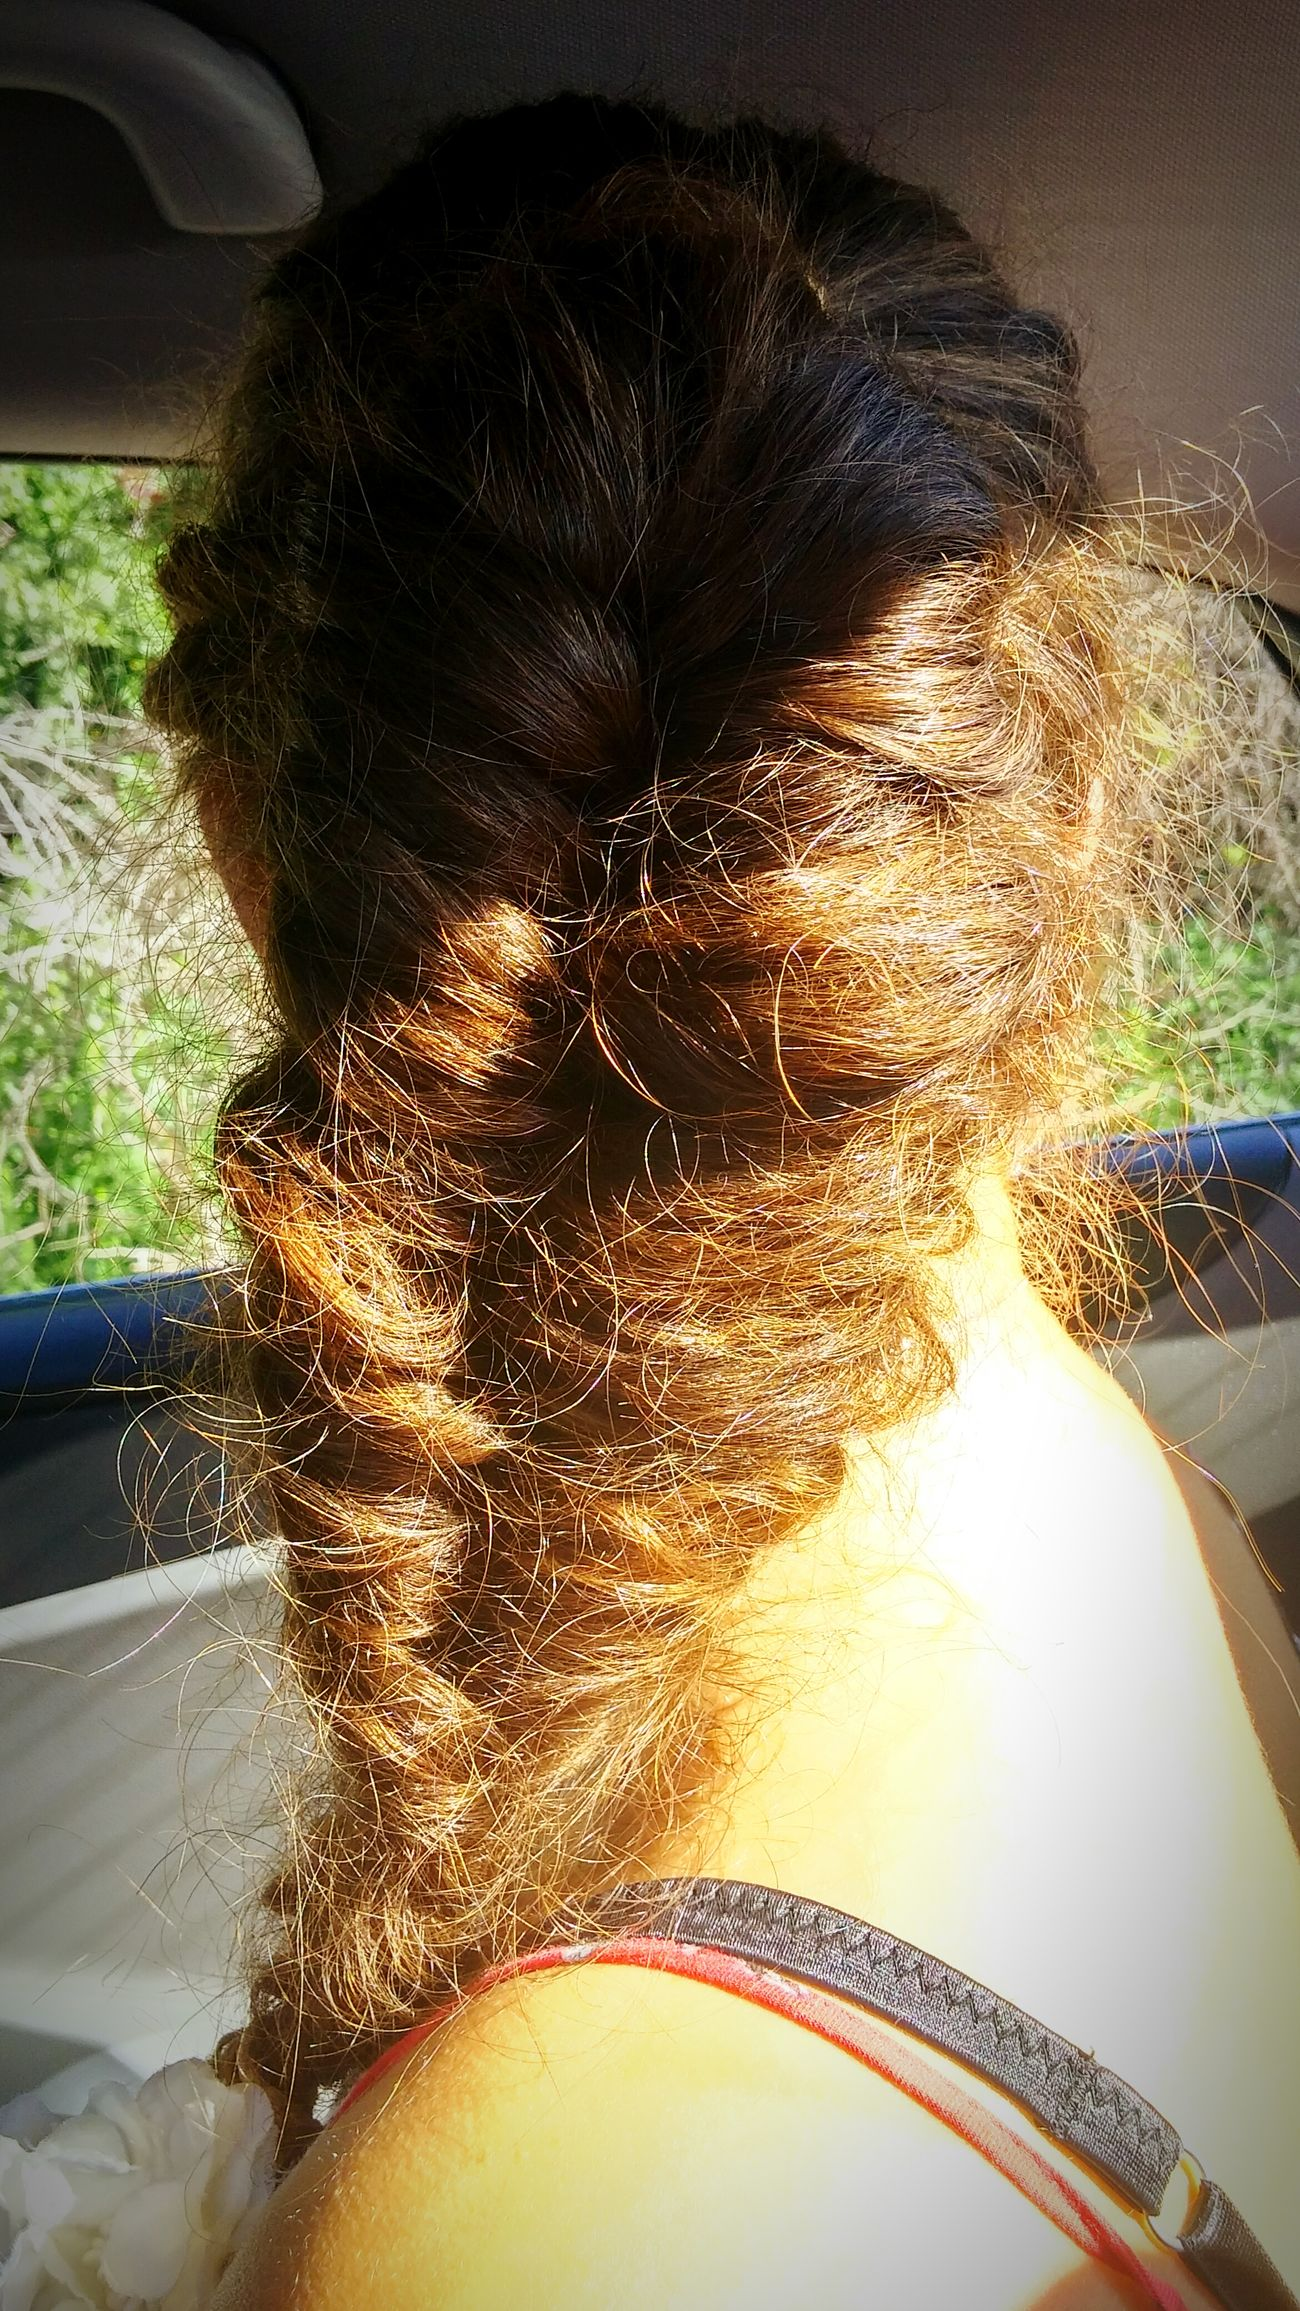 Hair Styles Fishtail Braid Curly Brownl Love ❤❤